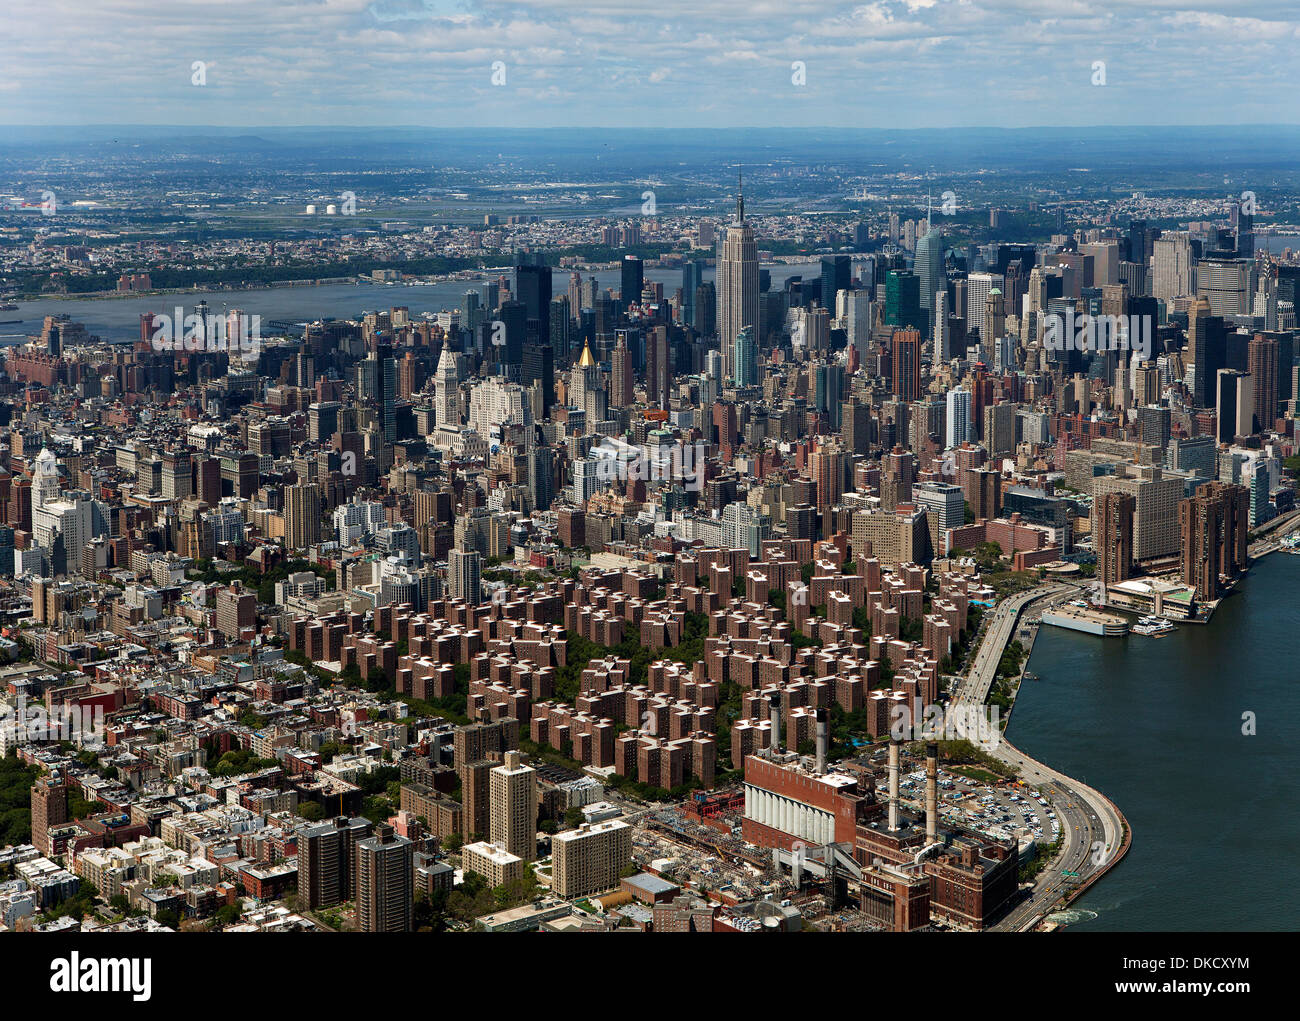 Aerial photograph stuyvesant town peter cooper village to for Stuyvesant town peter cooper village